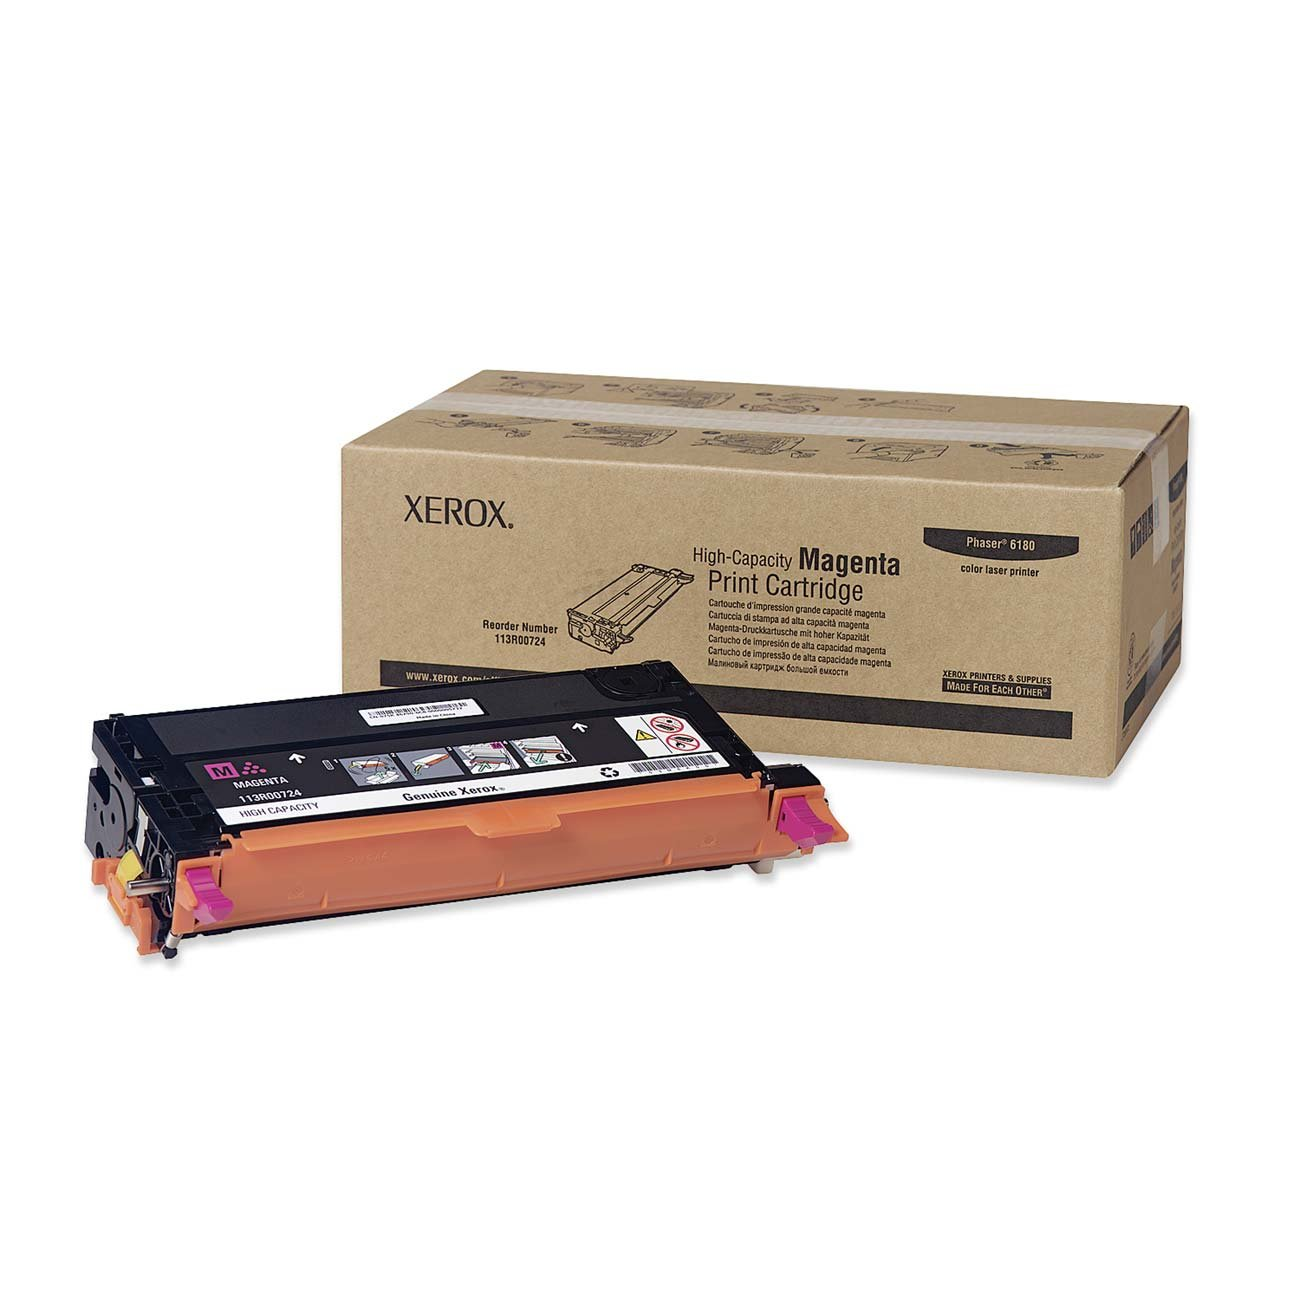 XEROX 113R00724 High Capacity Magenta Toner Cartridge For Phaser 6180